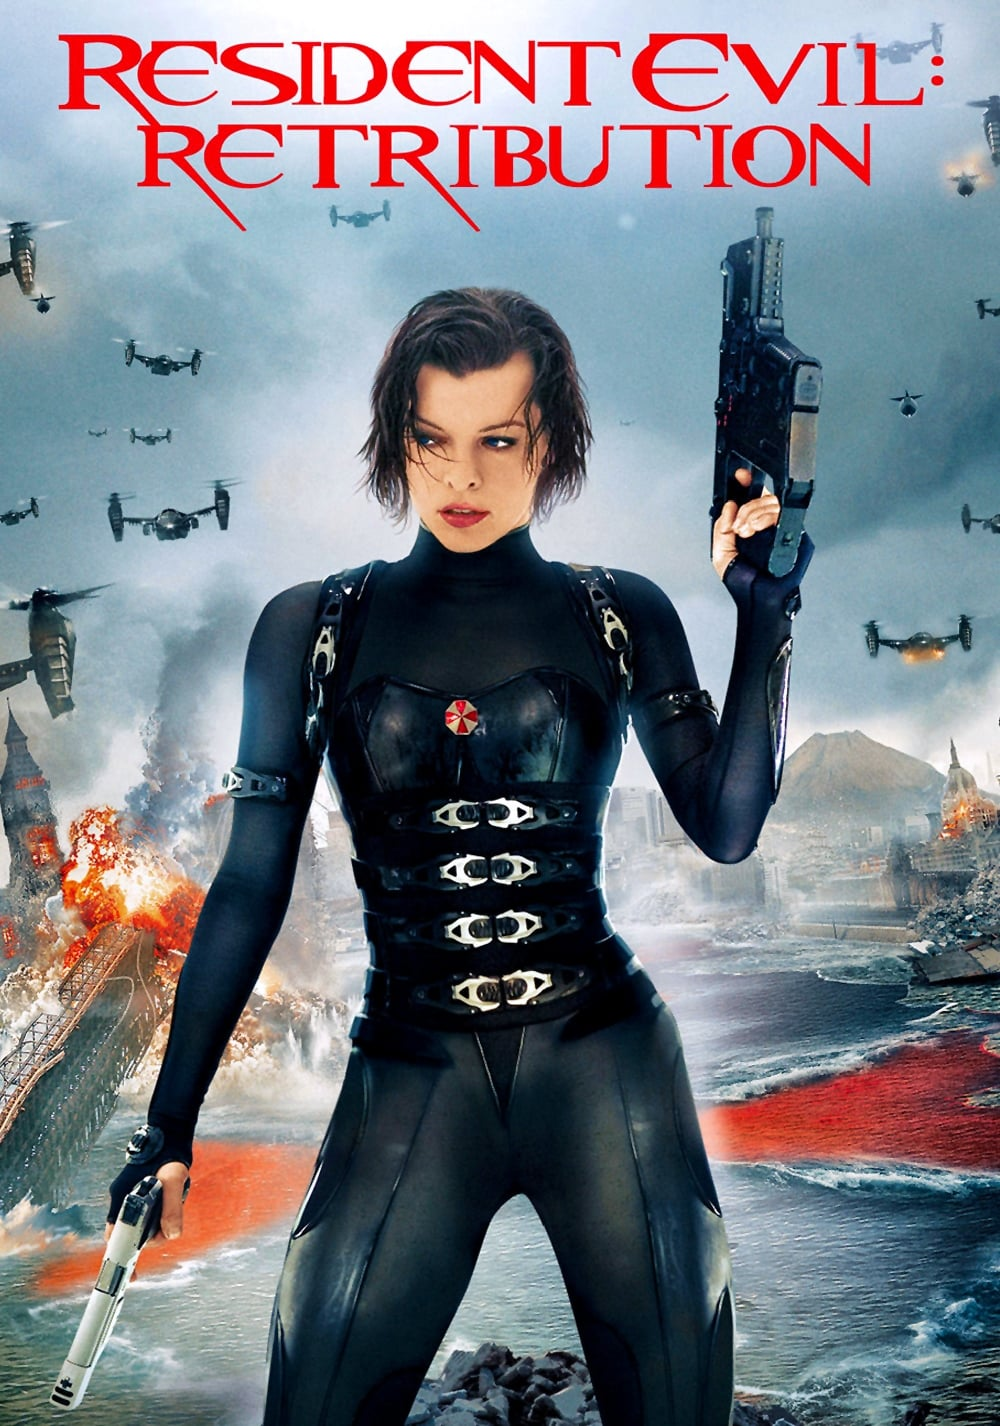 Resident Evil: Retribution (2012) - Posters — The Movie ...